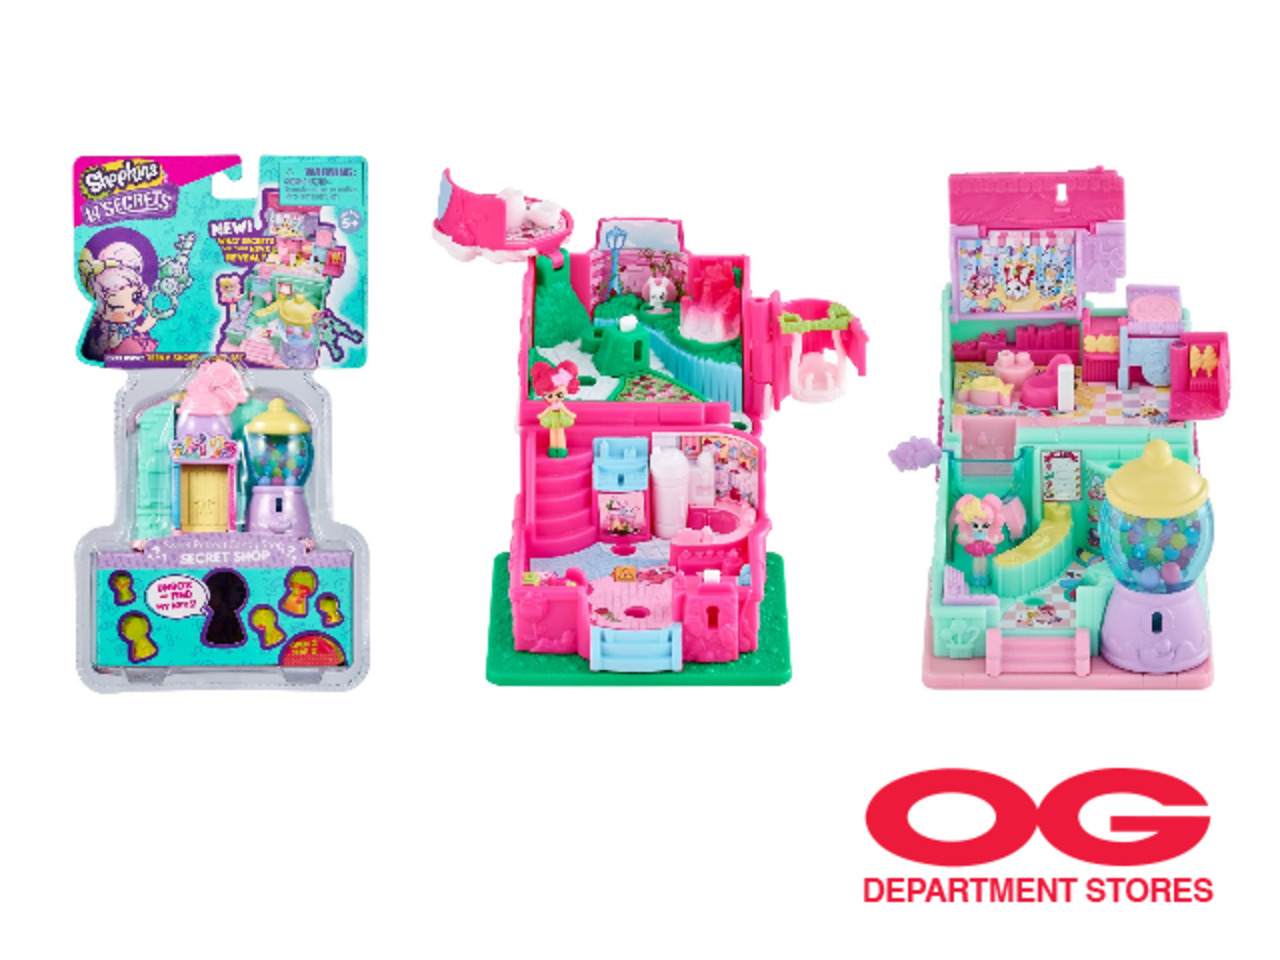 SHOPKINS SECRETS S3 MINI PLAYSET @ 2 for $15